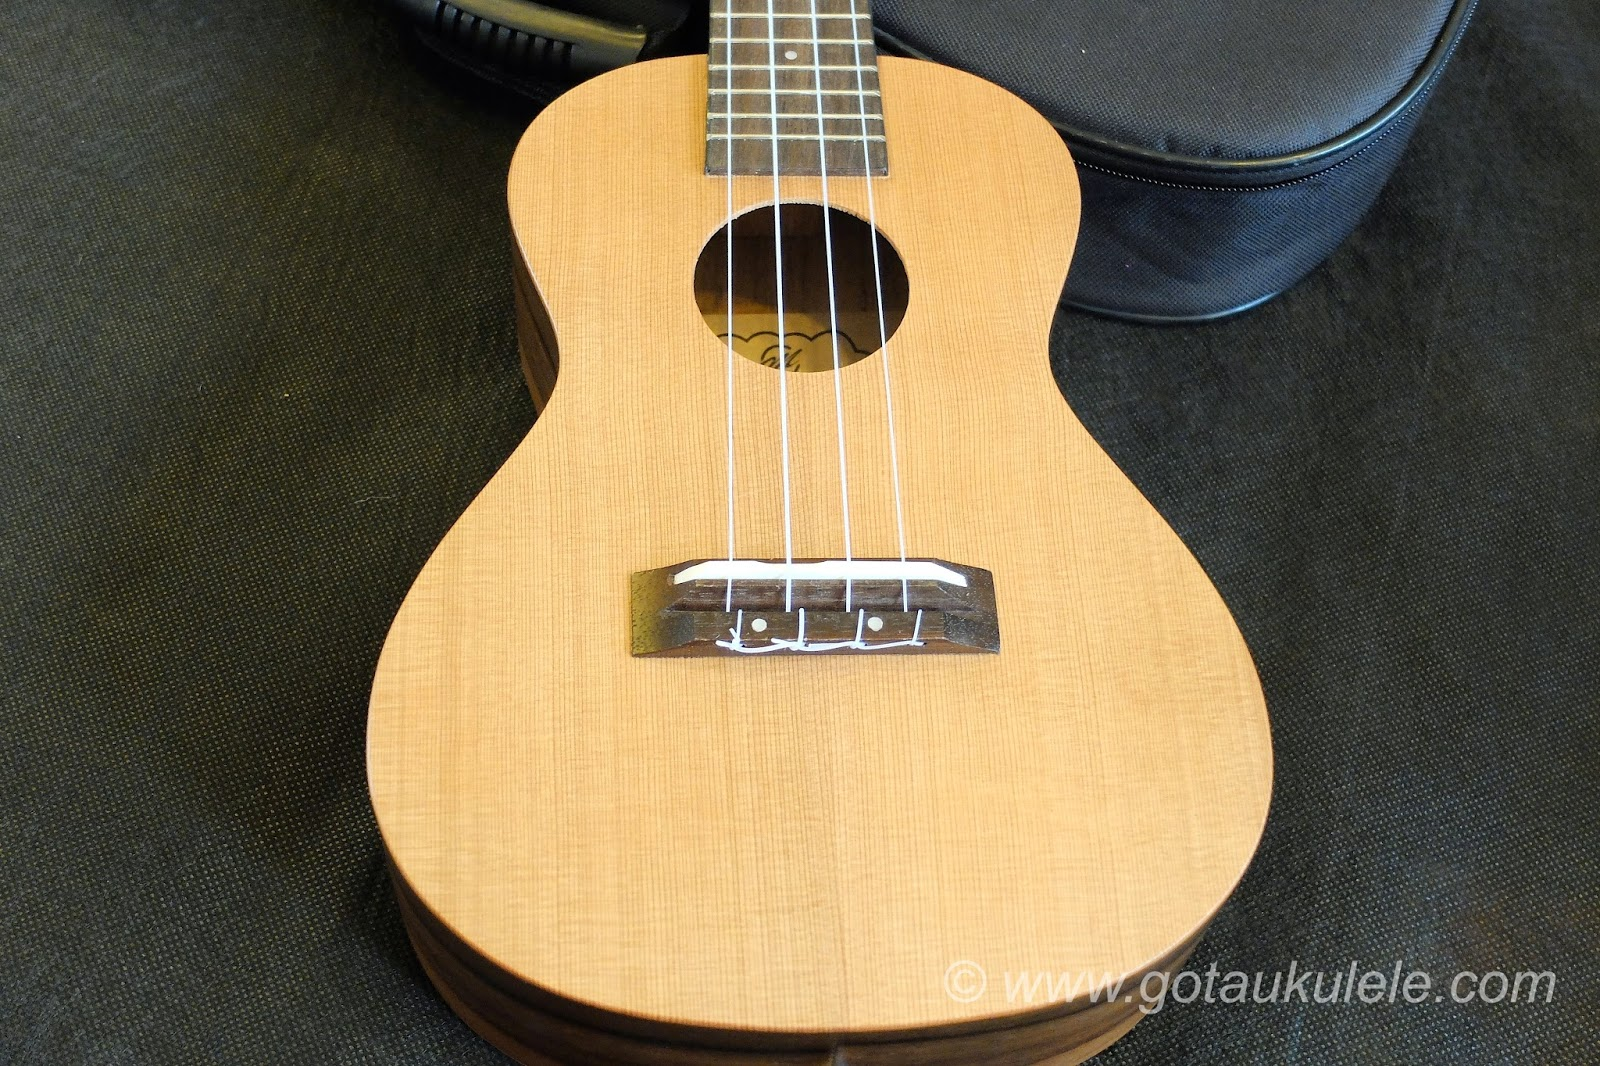 CloudMusic HM12 Ukulele solid cedar top